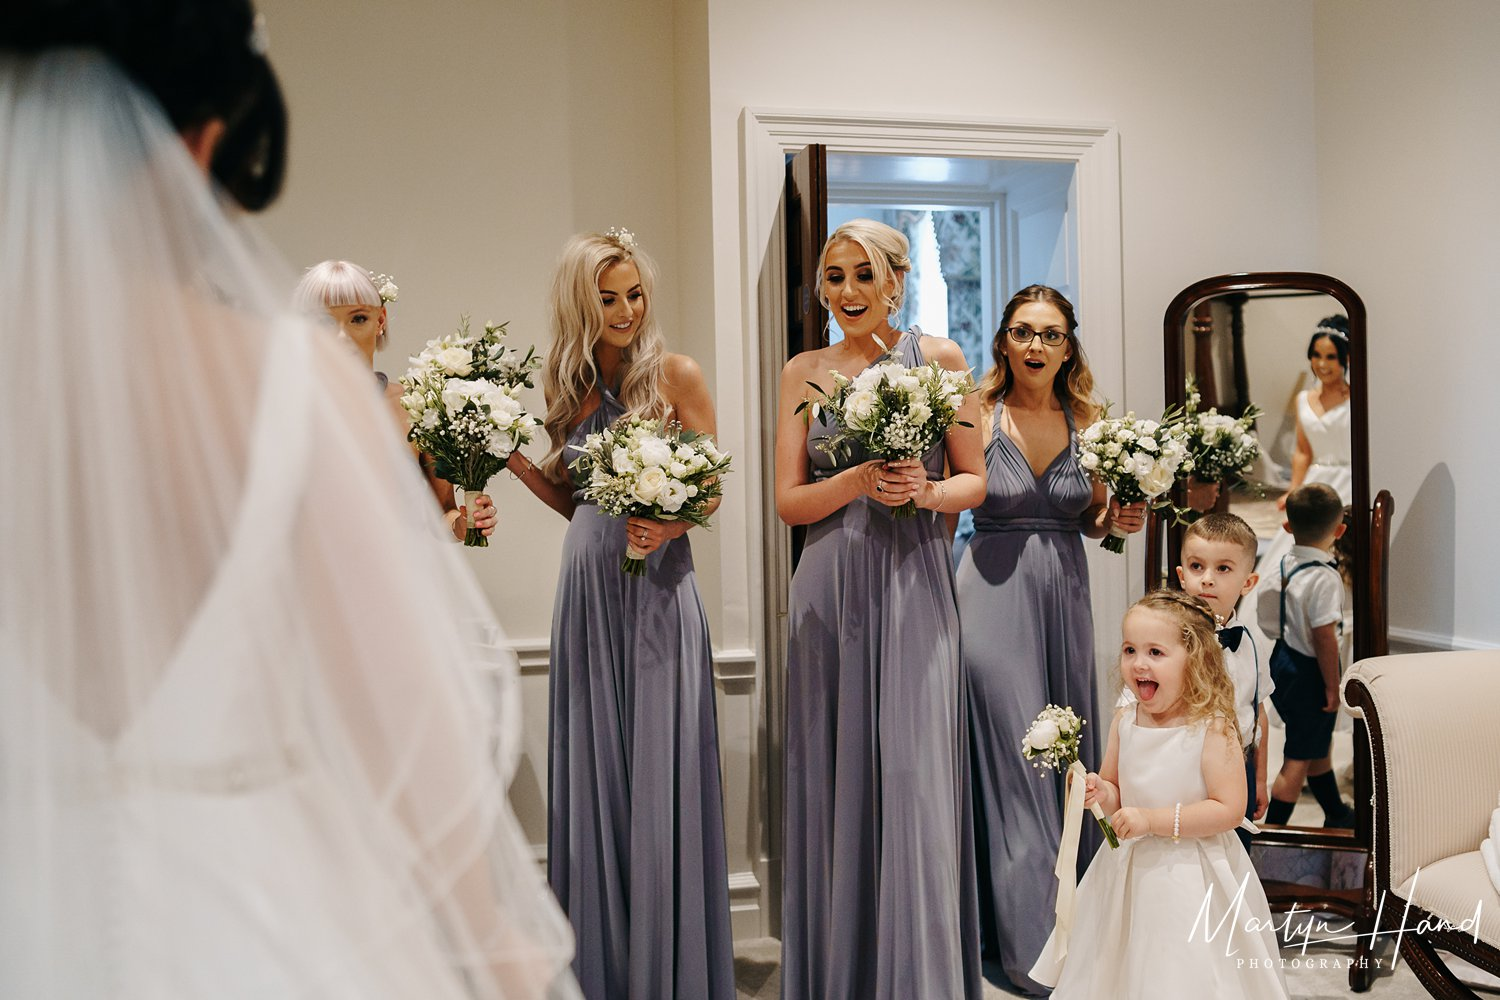 Bride Wedding Dress Bridesmaids Wedding Denton Hall Yorkshire